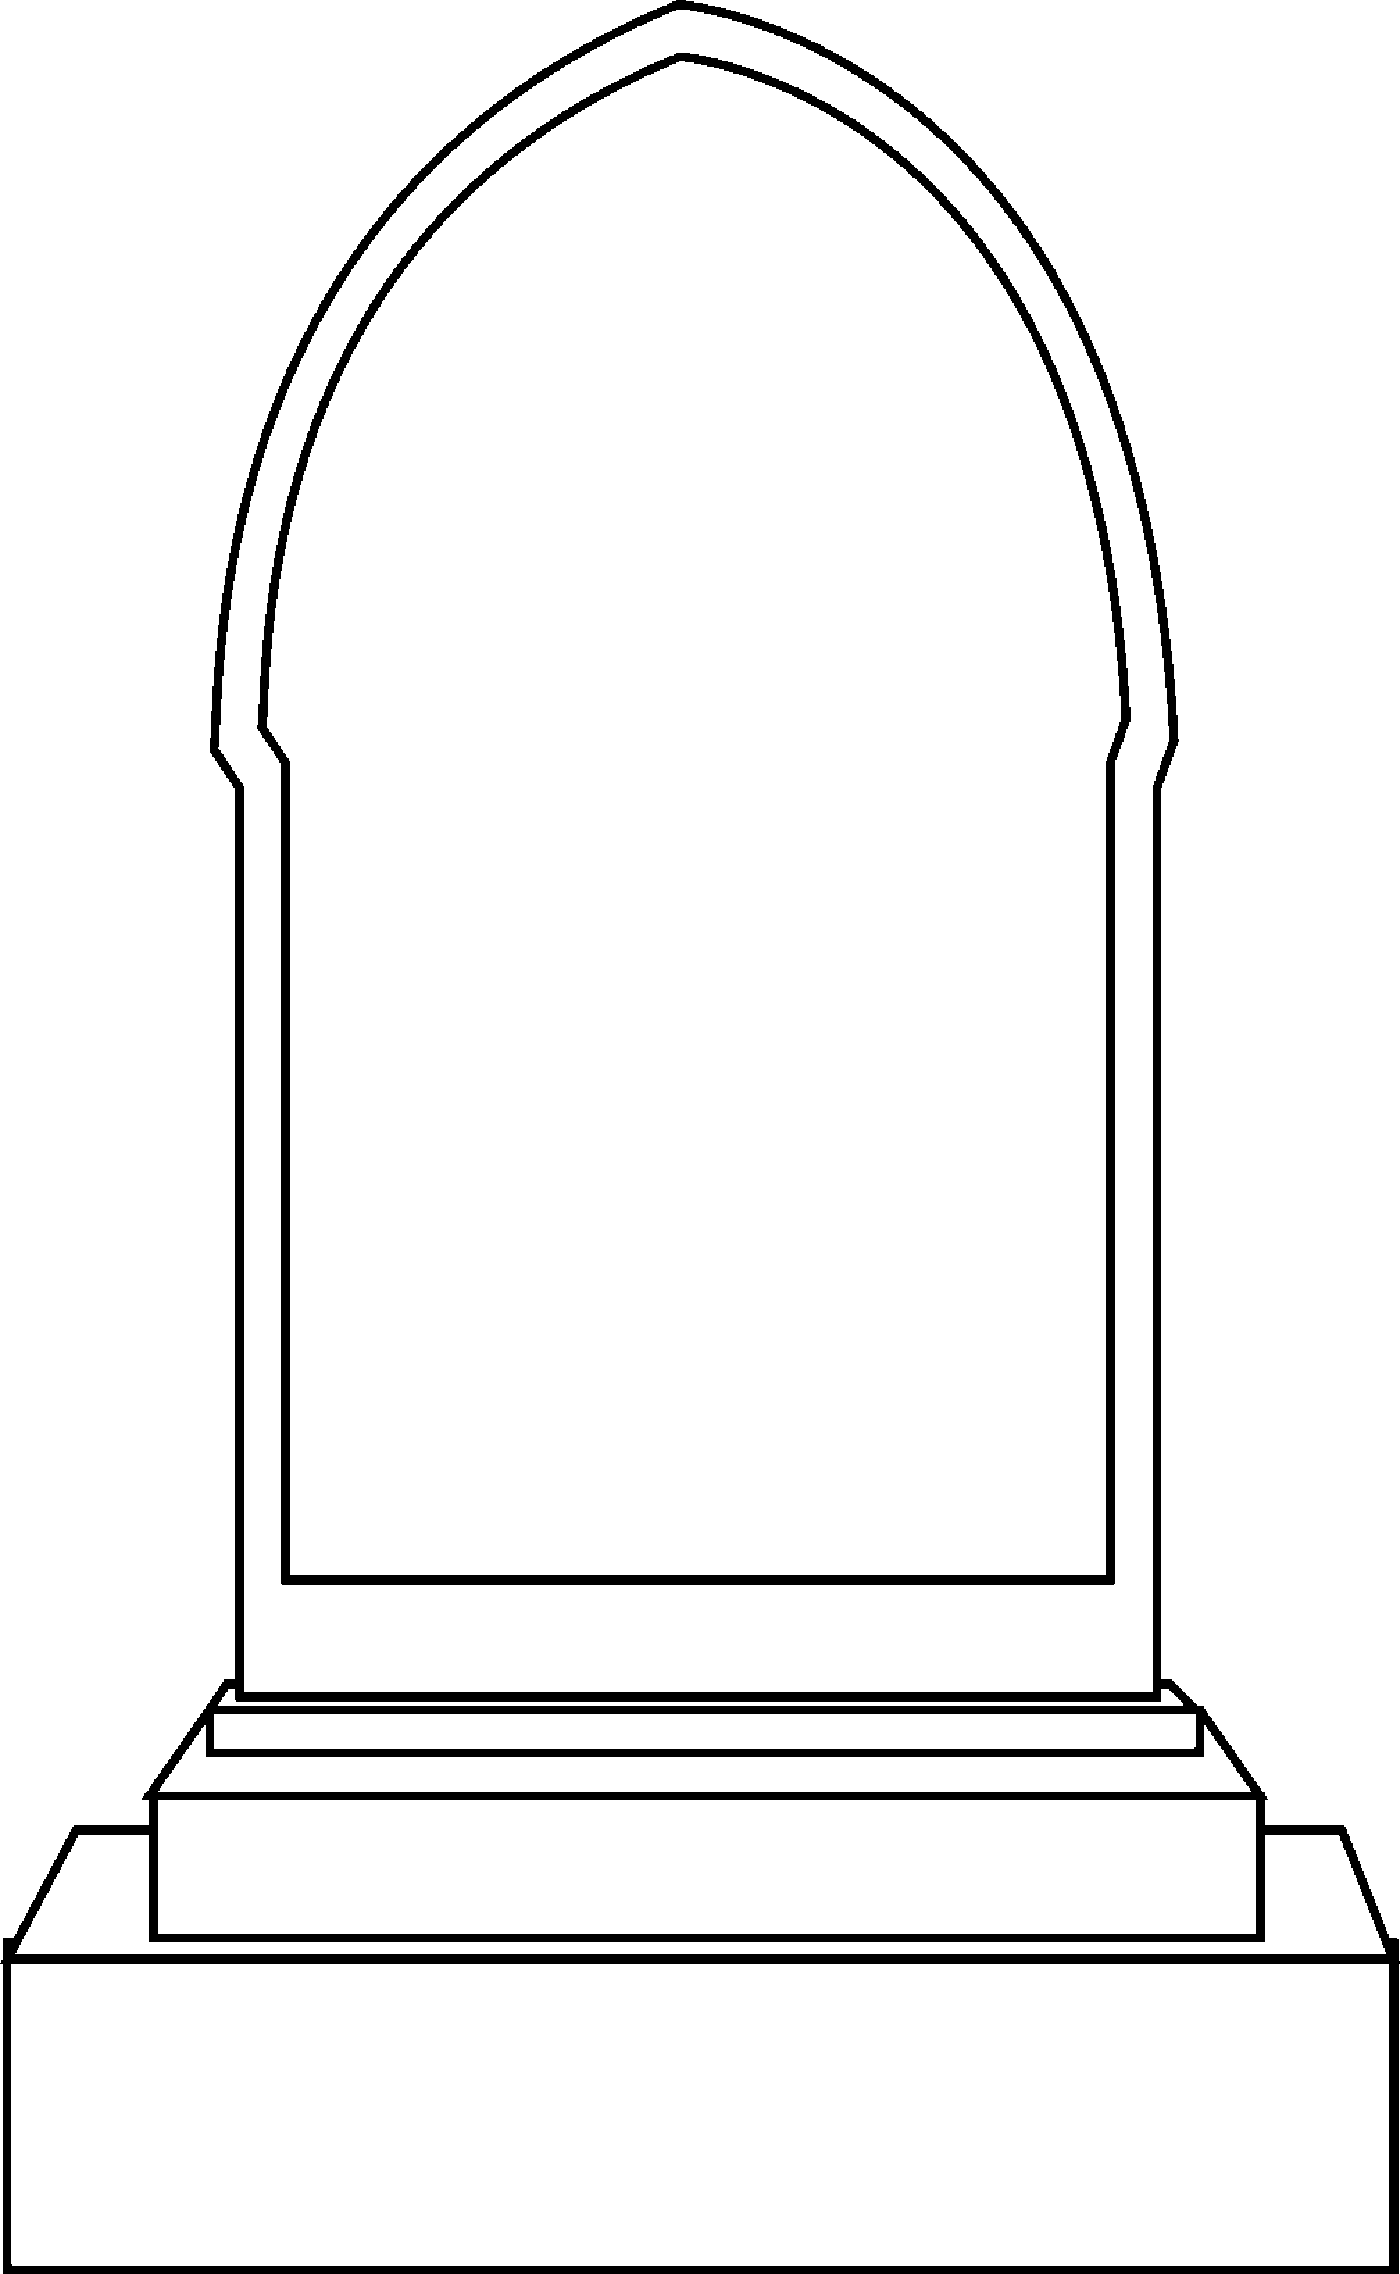 Gravestone black and white clipart graphic free stock Free Headstones Cliparts, Download Free Clip Art, Free Clip Art on ... graphic free stock